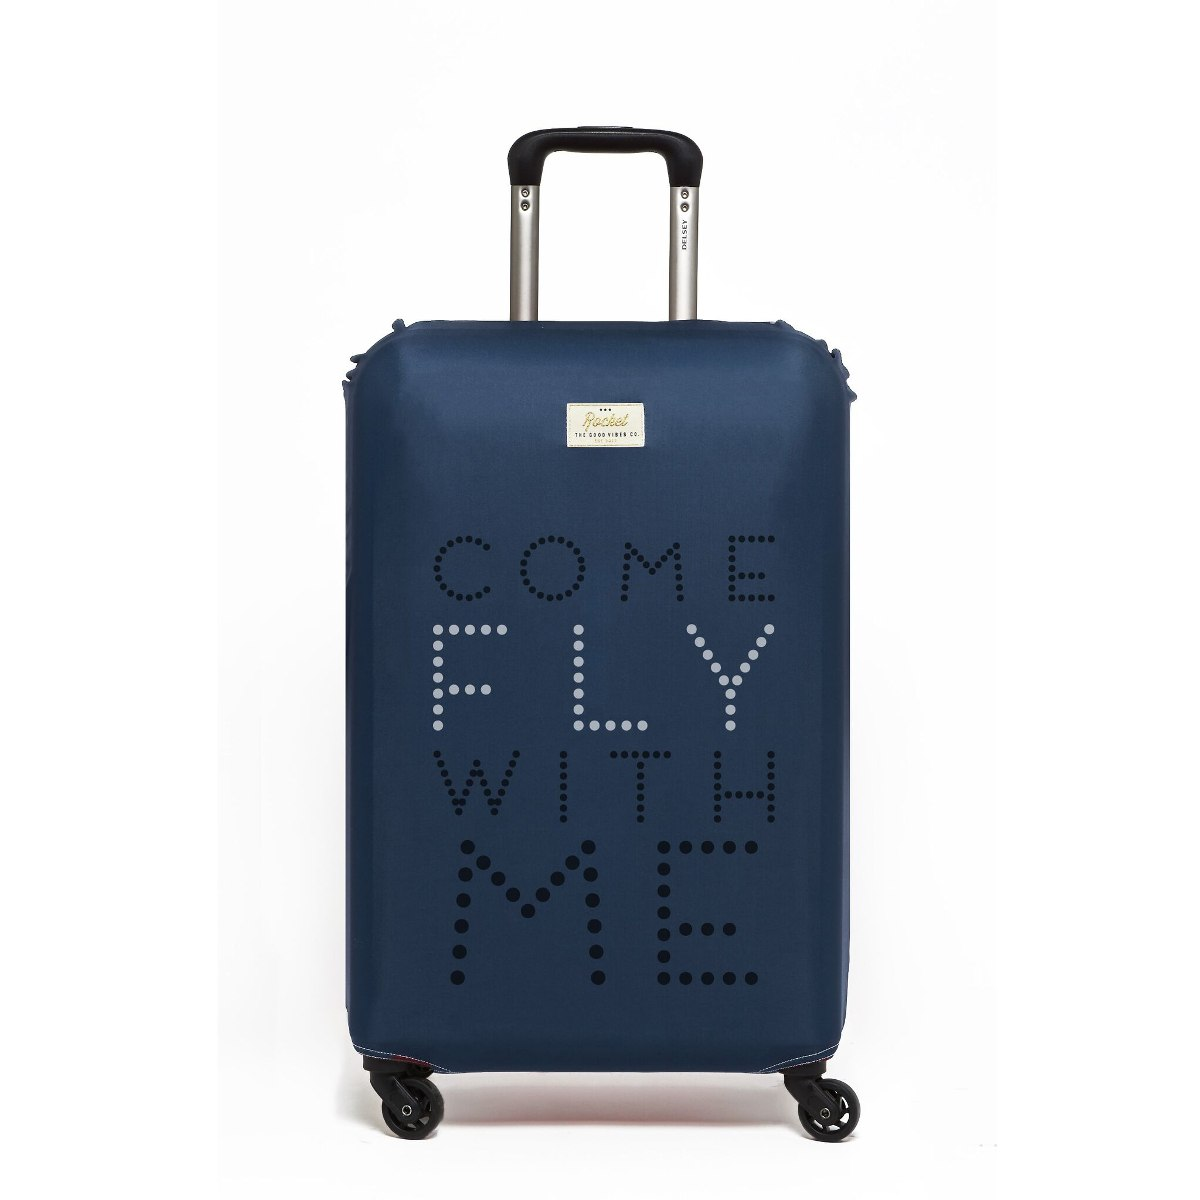 Luggage Cover Come fly with me